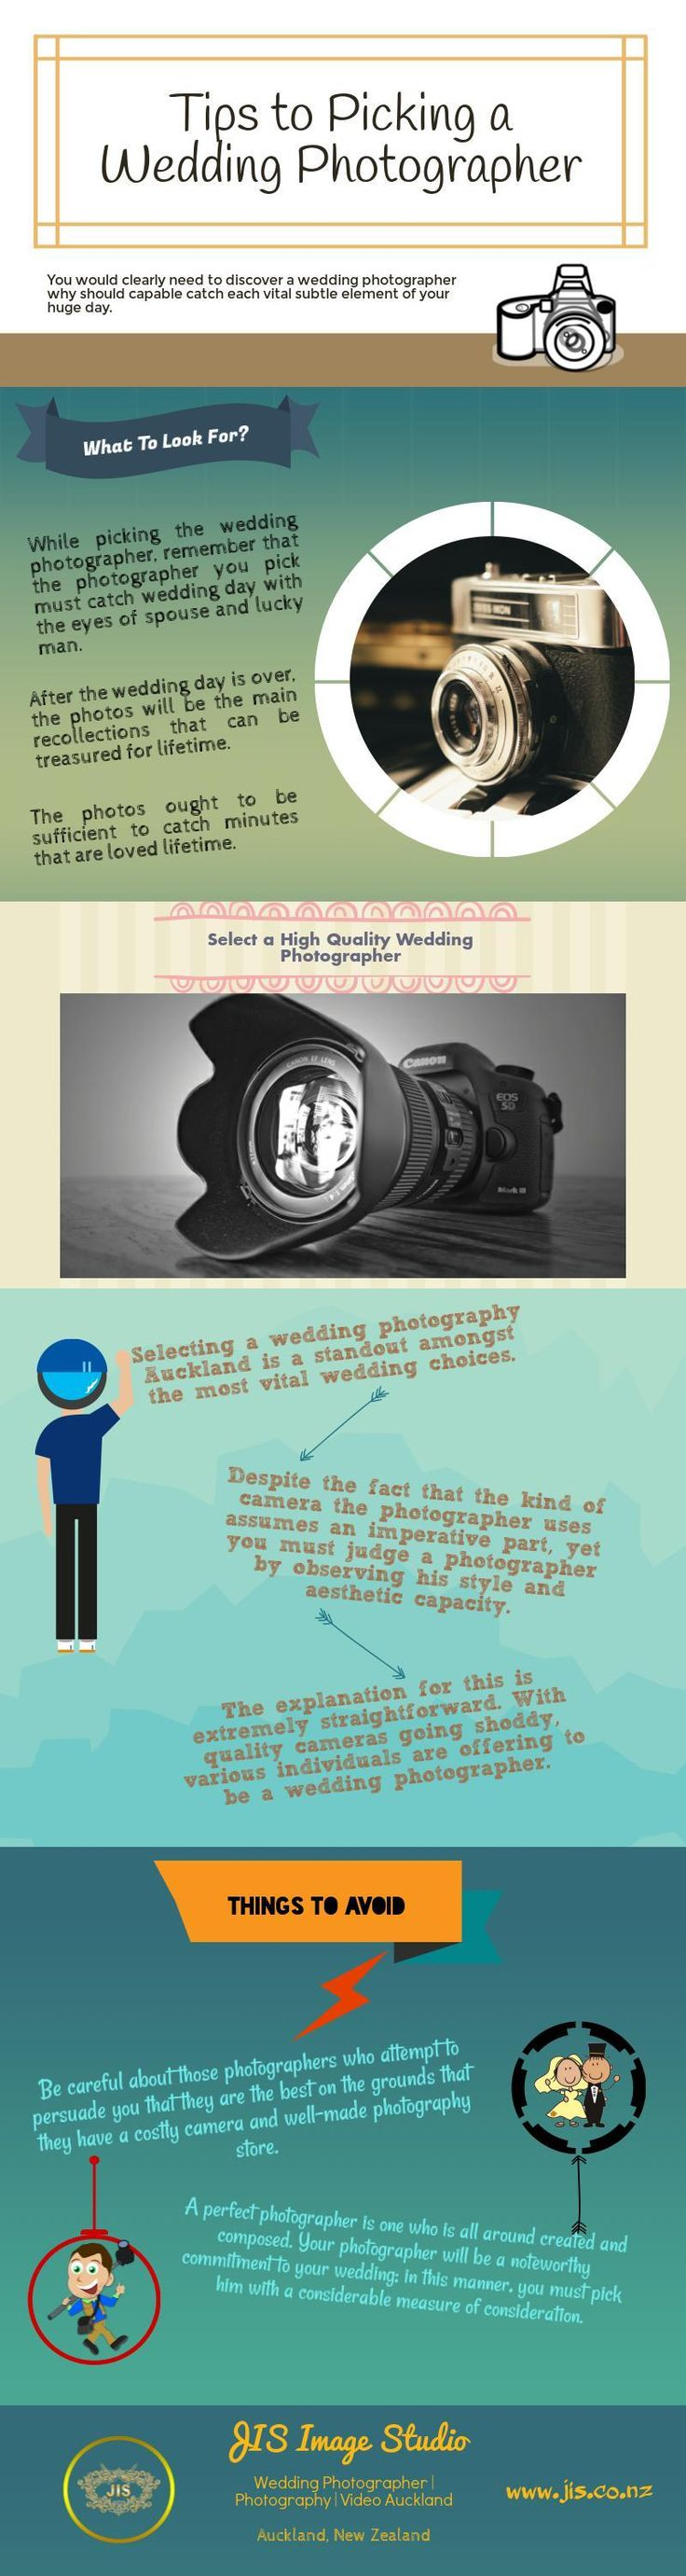 Tips to Picking a Wedding Photographer Auckland. You would clearly need to discover a #wedding #photographer why should capable catch each vital subtle element of your huge day. Selecting a wedding #photography #Auckland is a standout amongst the most vital wedding choices. A perfect photographer is one who is all around created and composed. #infographic